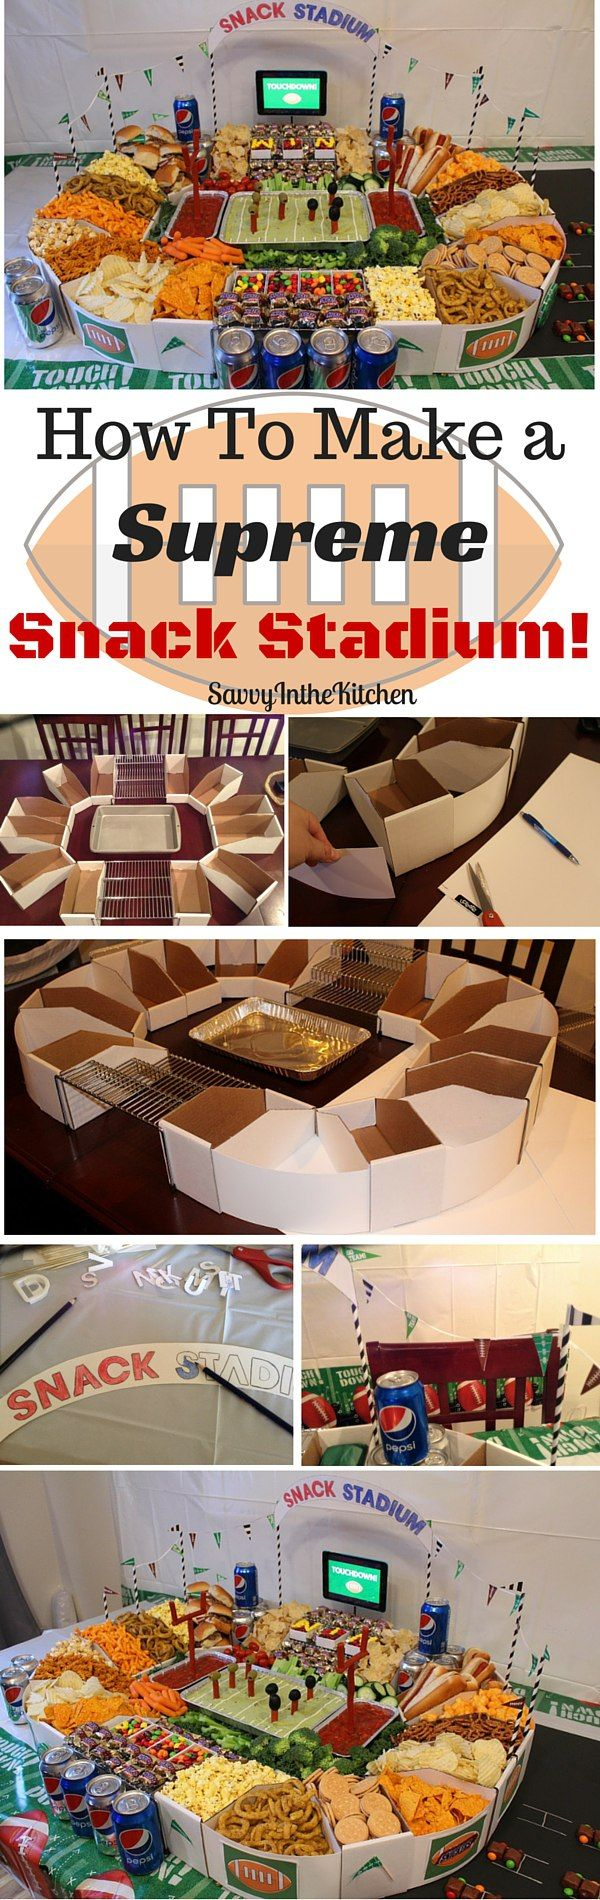 How To Make A Supreme Snack Stadium! #GameDayGlory This is one of the biggest, b…